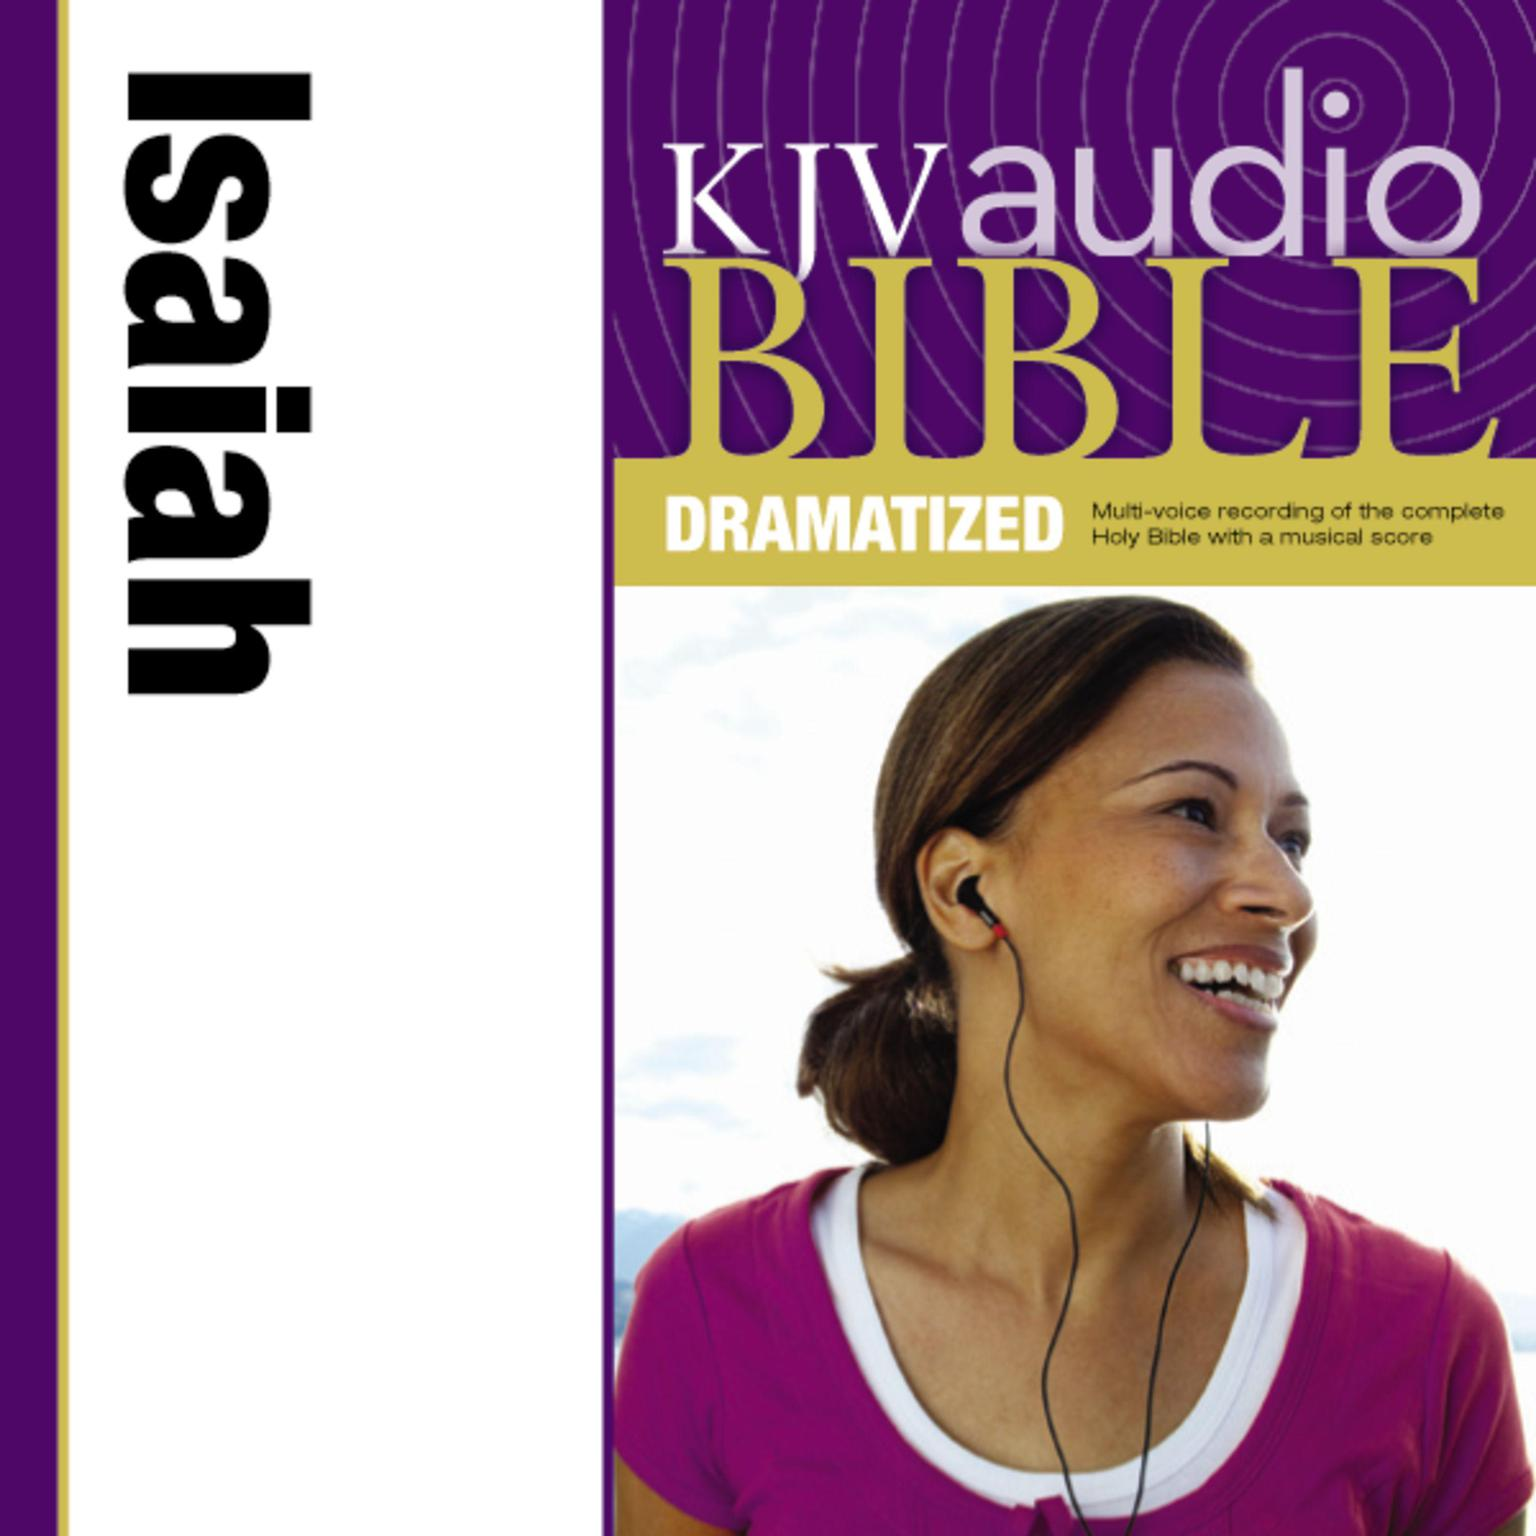 Printable KJV, Audio Bible, Dramatized: Isaiah, Audio Download Audiobook Cover Art